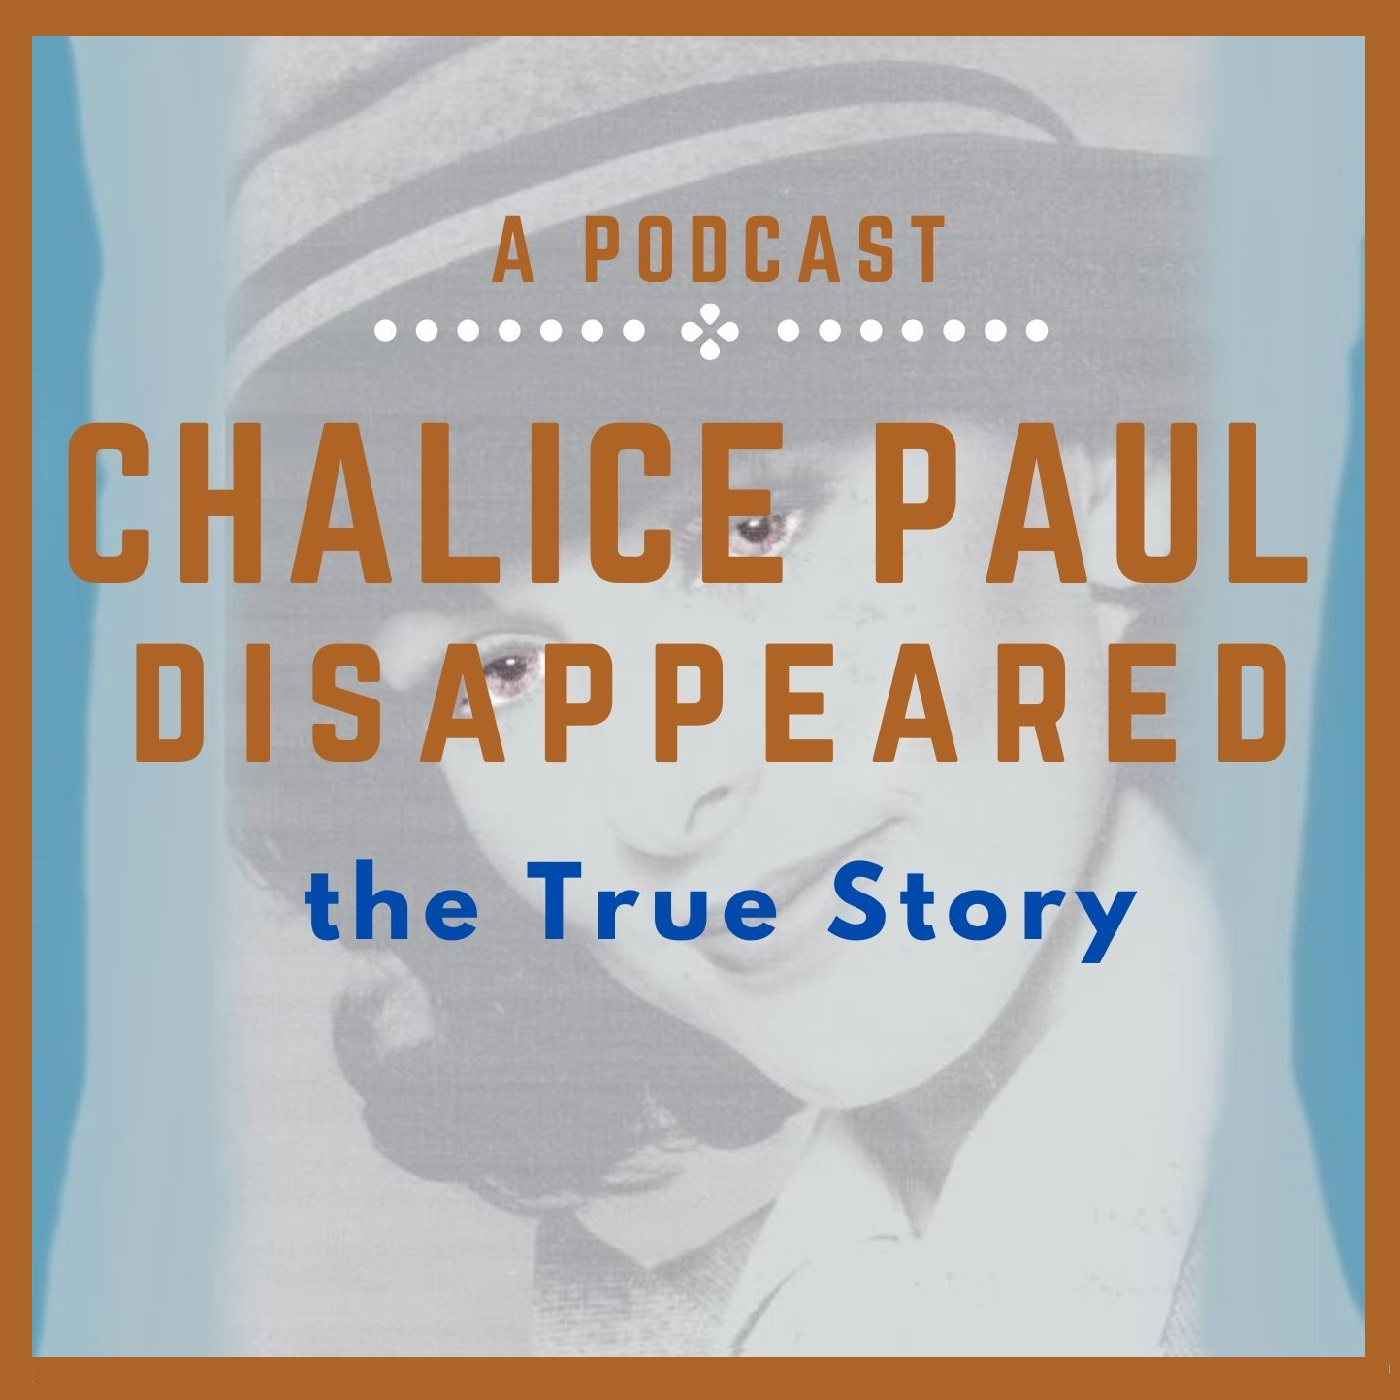 Chalice Paul-DISAPPEARED: the True Story